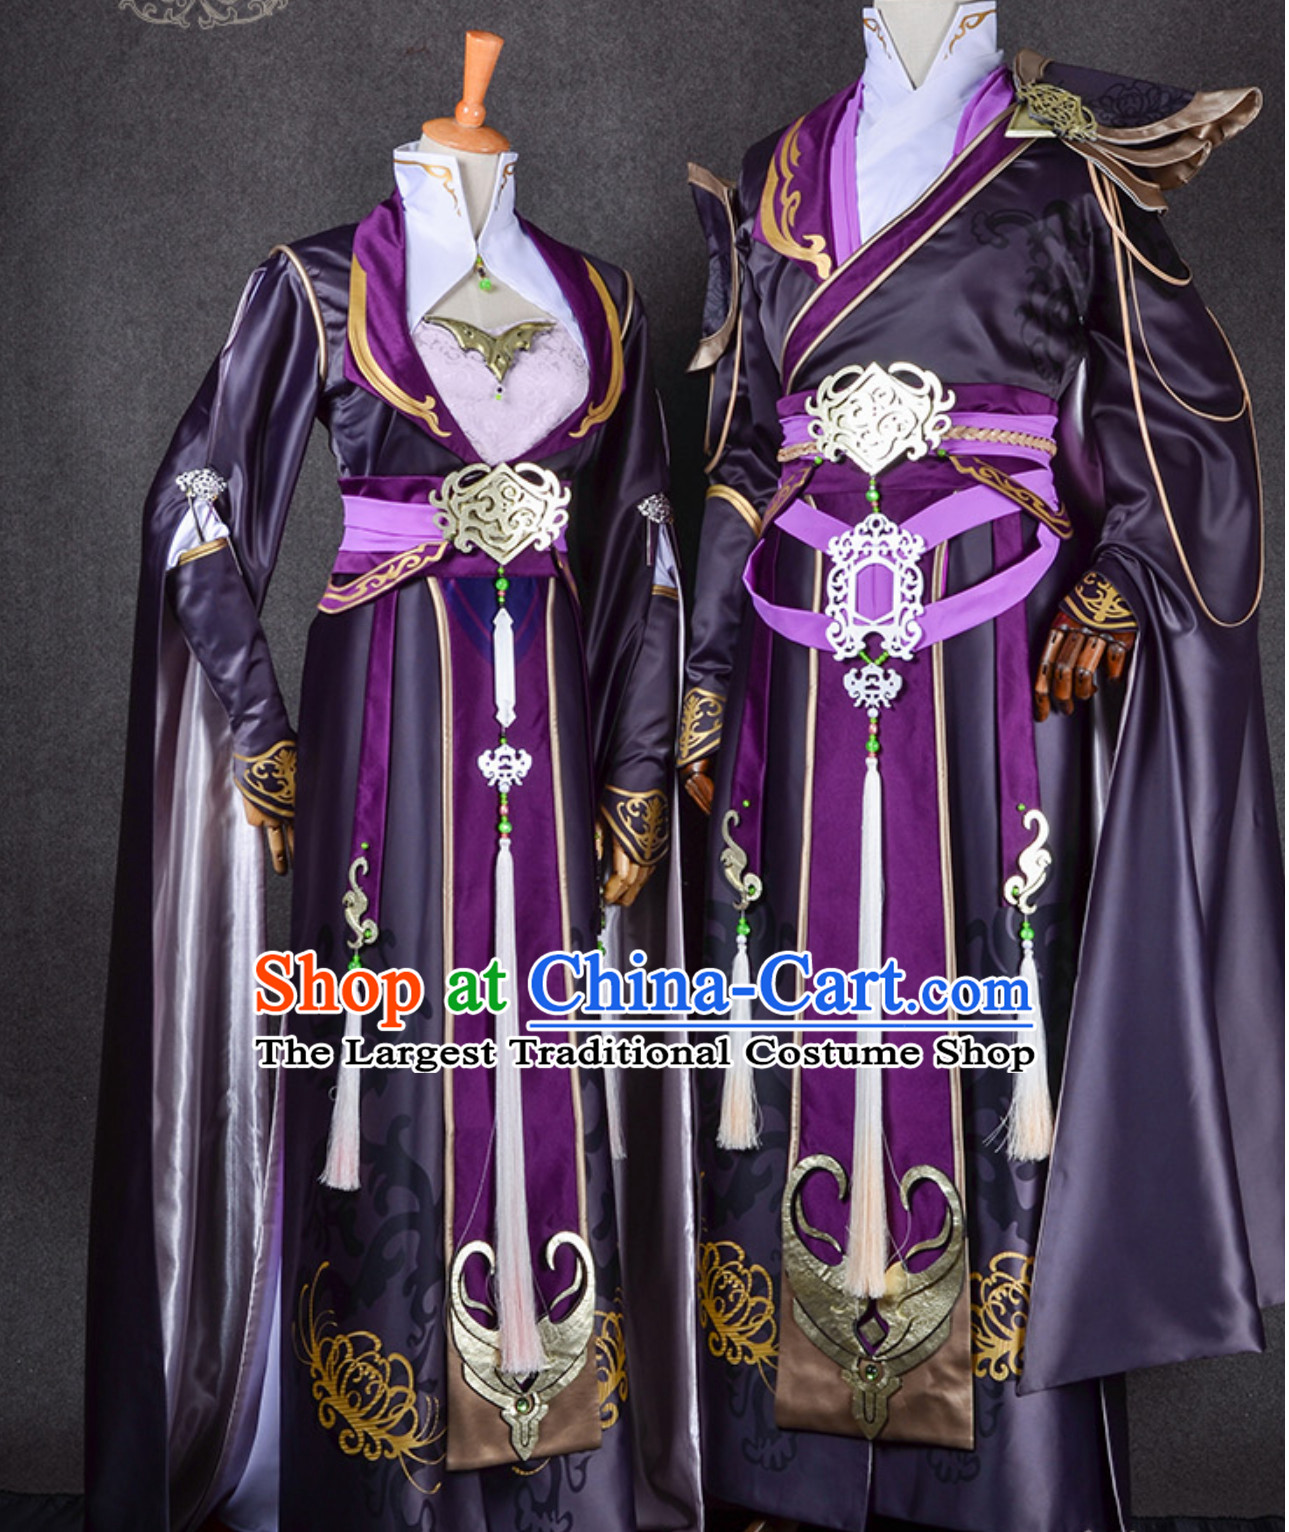 Ancient Chinese Swordsman Swordswoman Cosplay Superhero Costumes 2 Complete Sets for TV Show Film or Performance